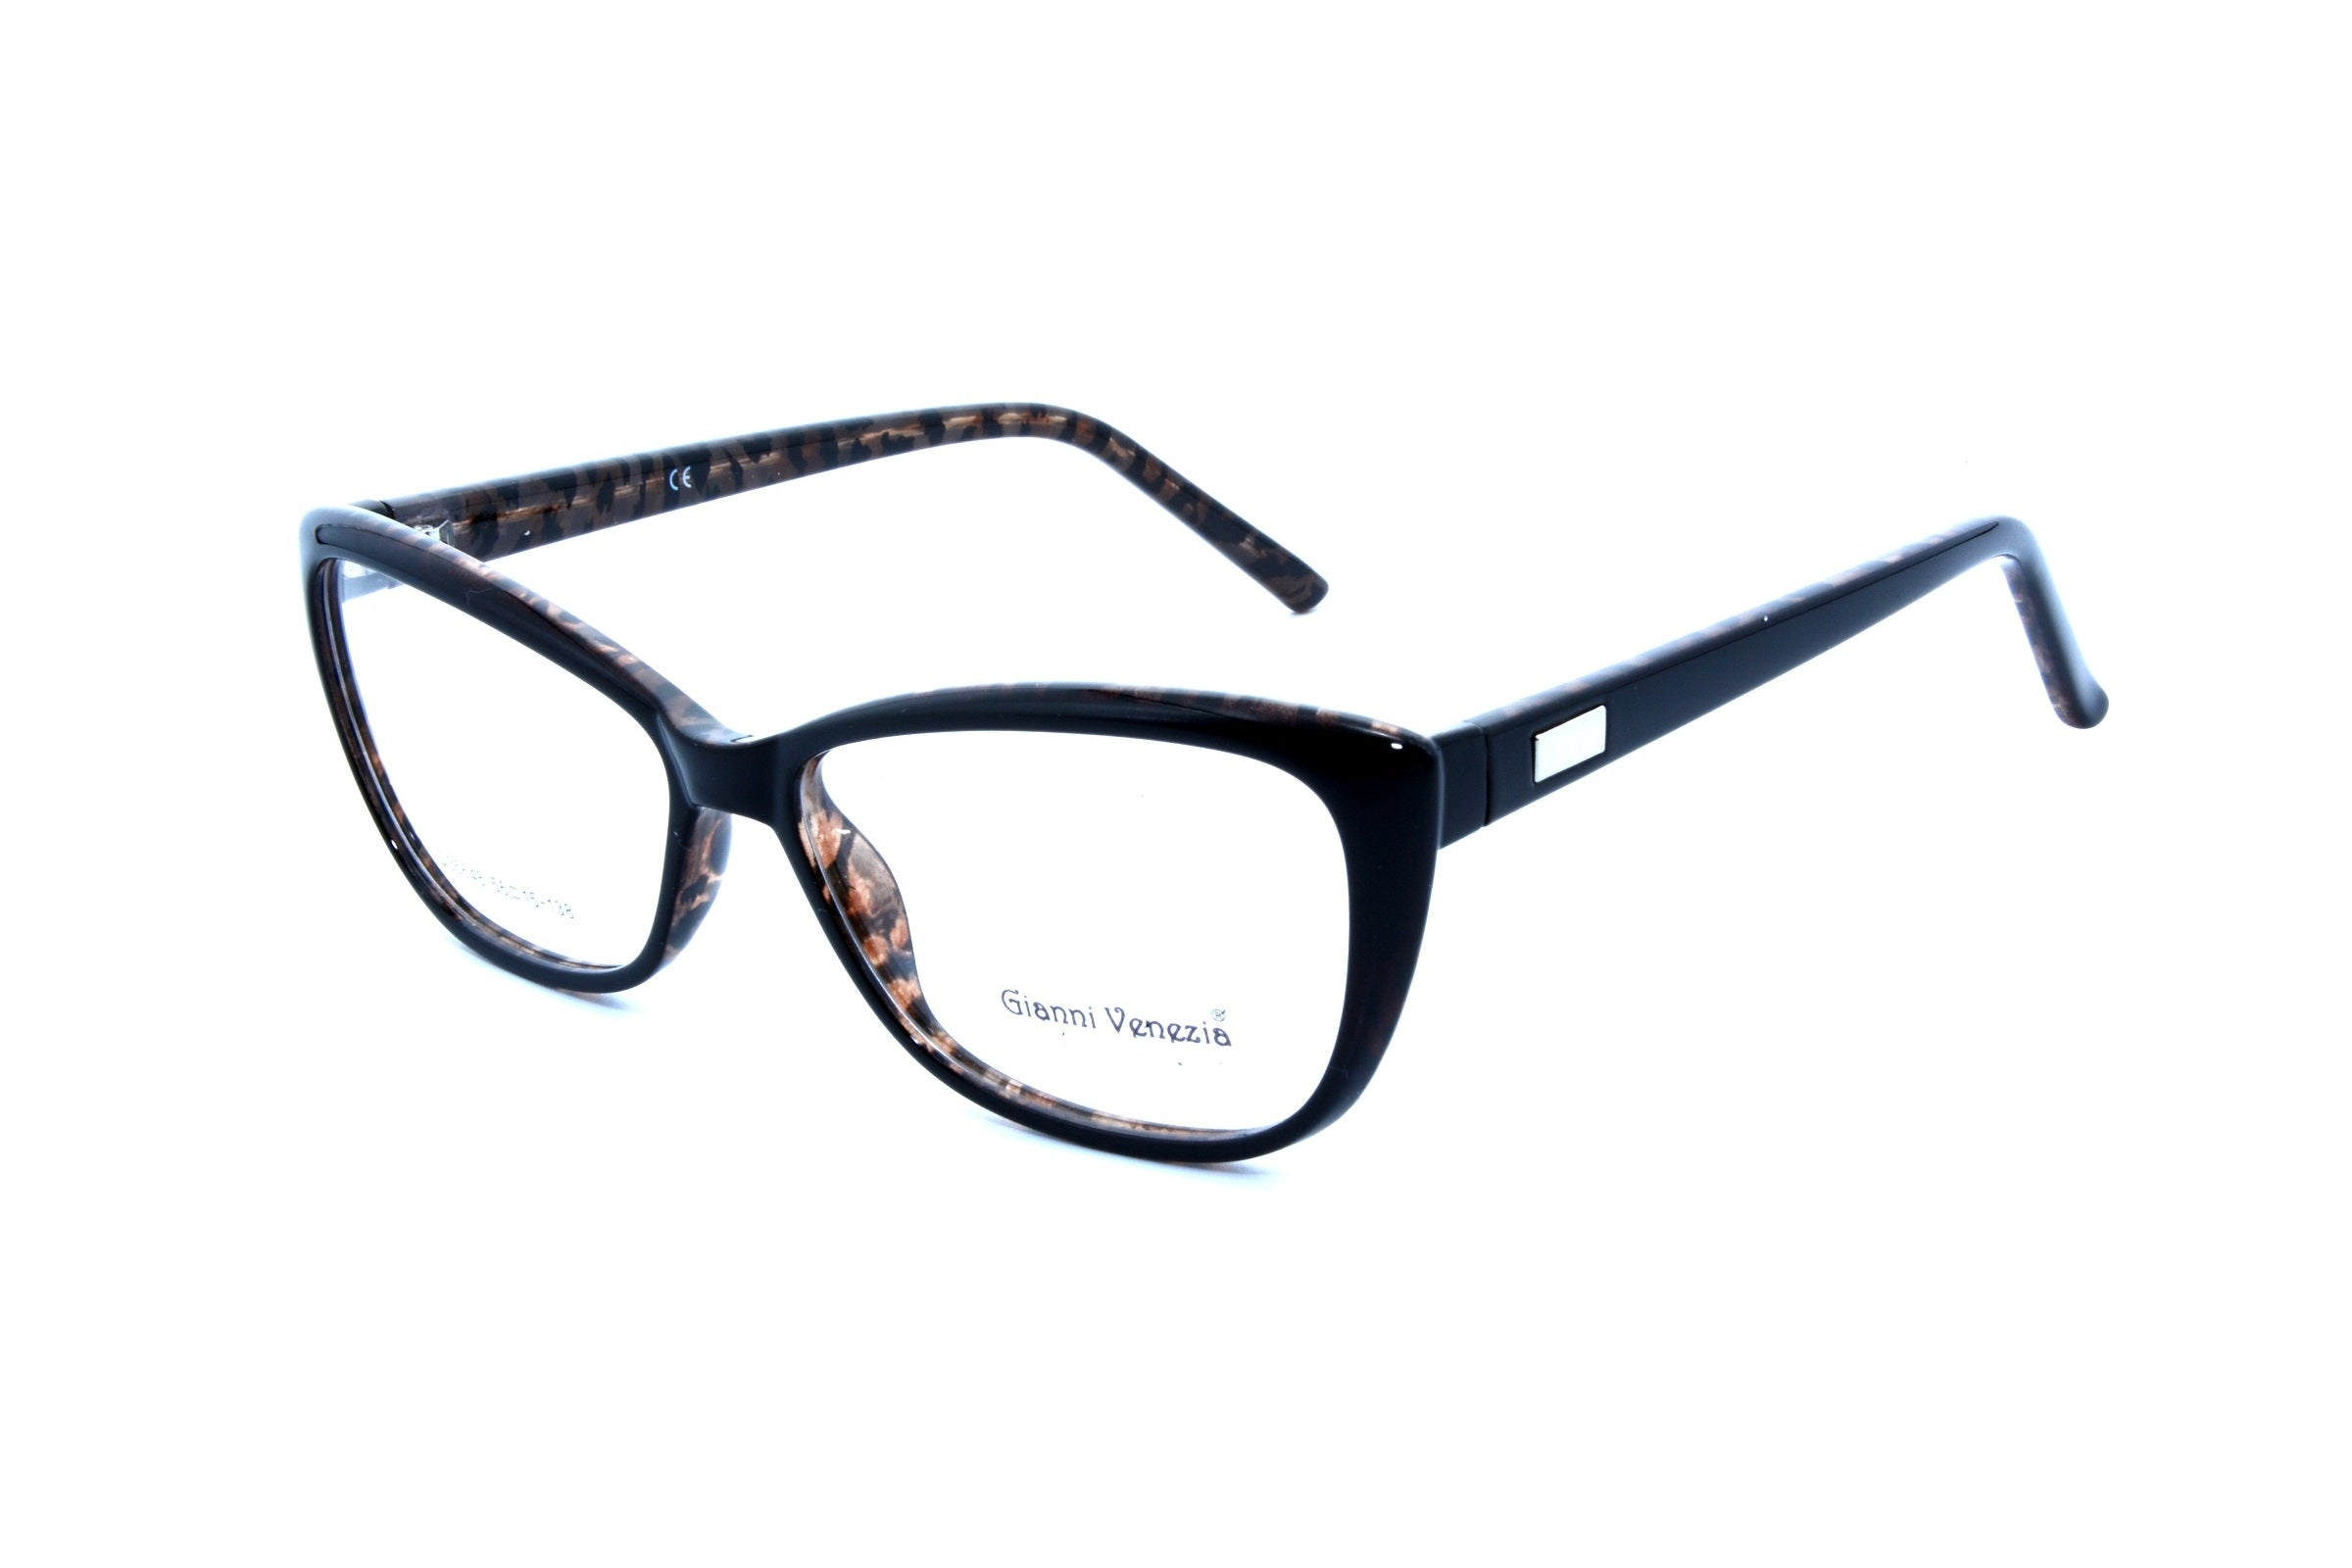 Gianni Vennezia eyewear 35648, C7 - Optics Trading